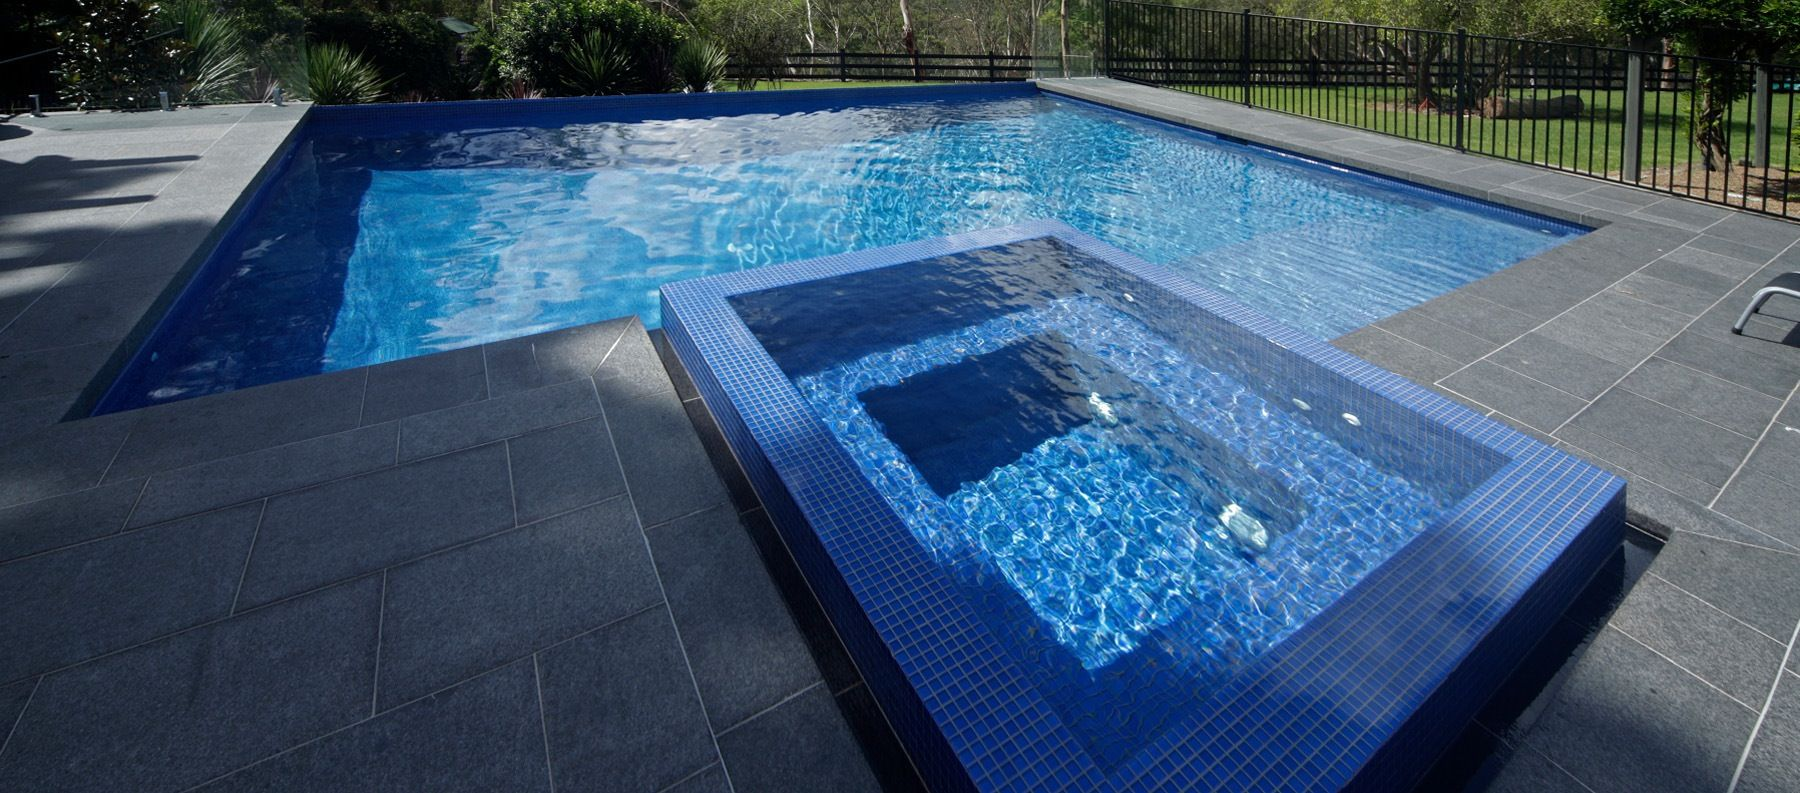 Love Dark Paving Around A Deep Blue Pool Swimming Pools Pinterest Blue Pool And Outdoor Spaces